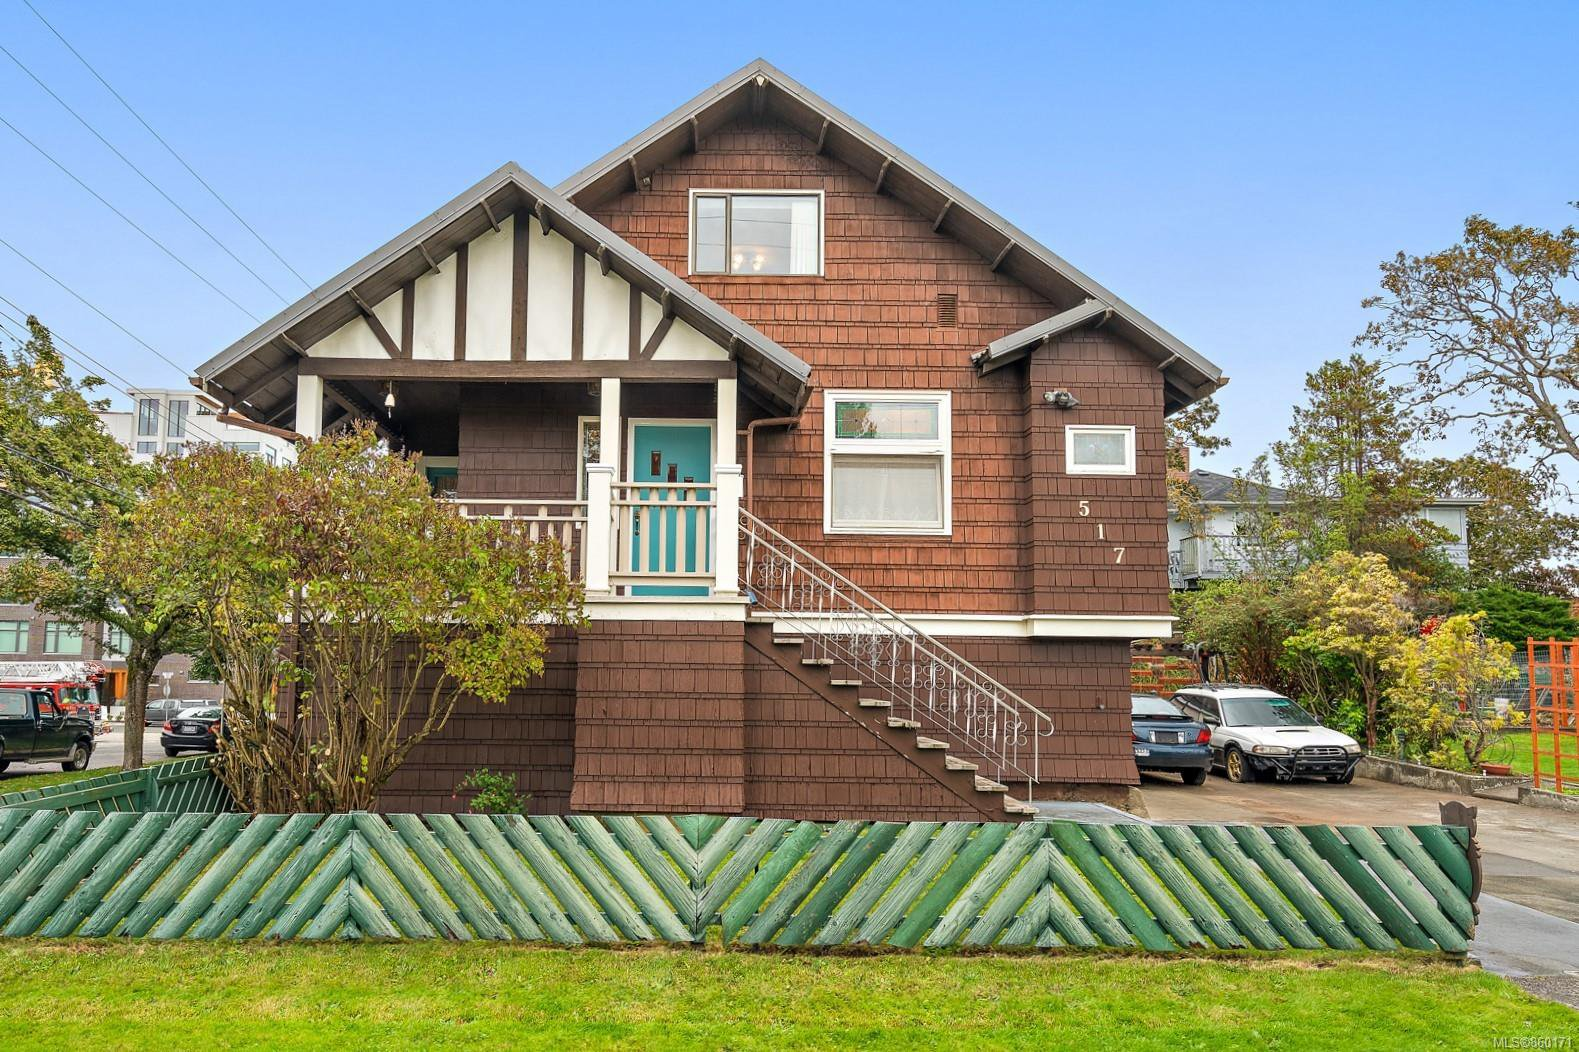 Main Photo: 517 Comerford St in : Es Saxe Point House for sale (Esquimalt)  : MLS®# 860171